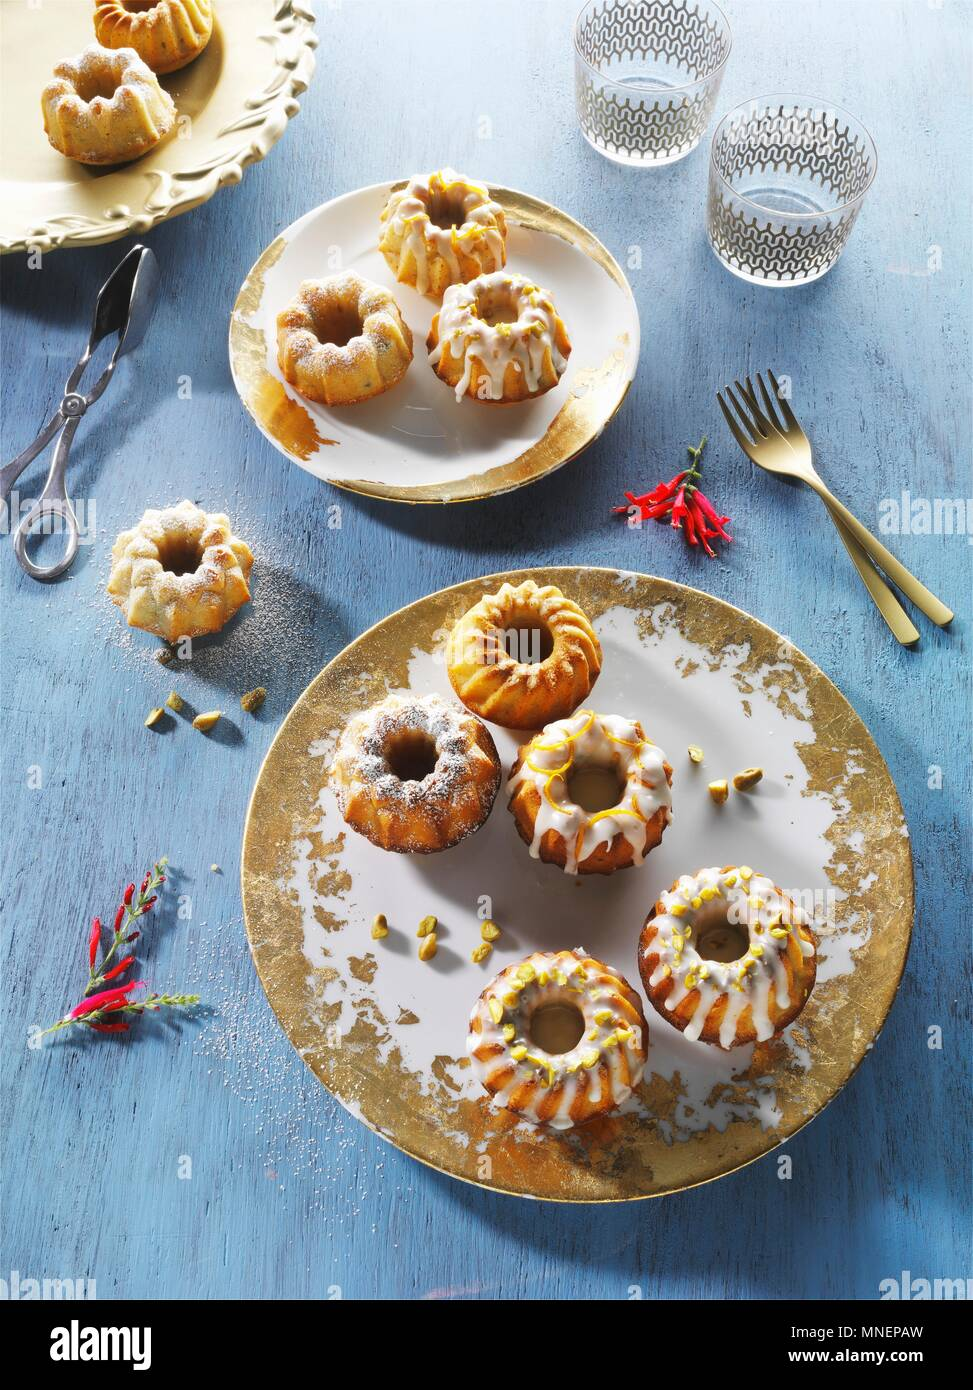 Mini Bundt cakes on gold-patterned plates on a blue wooden surface - Stock Image